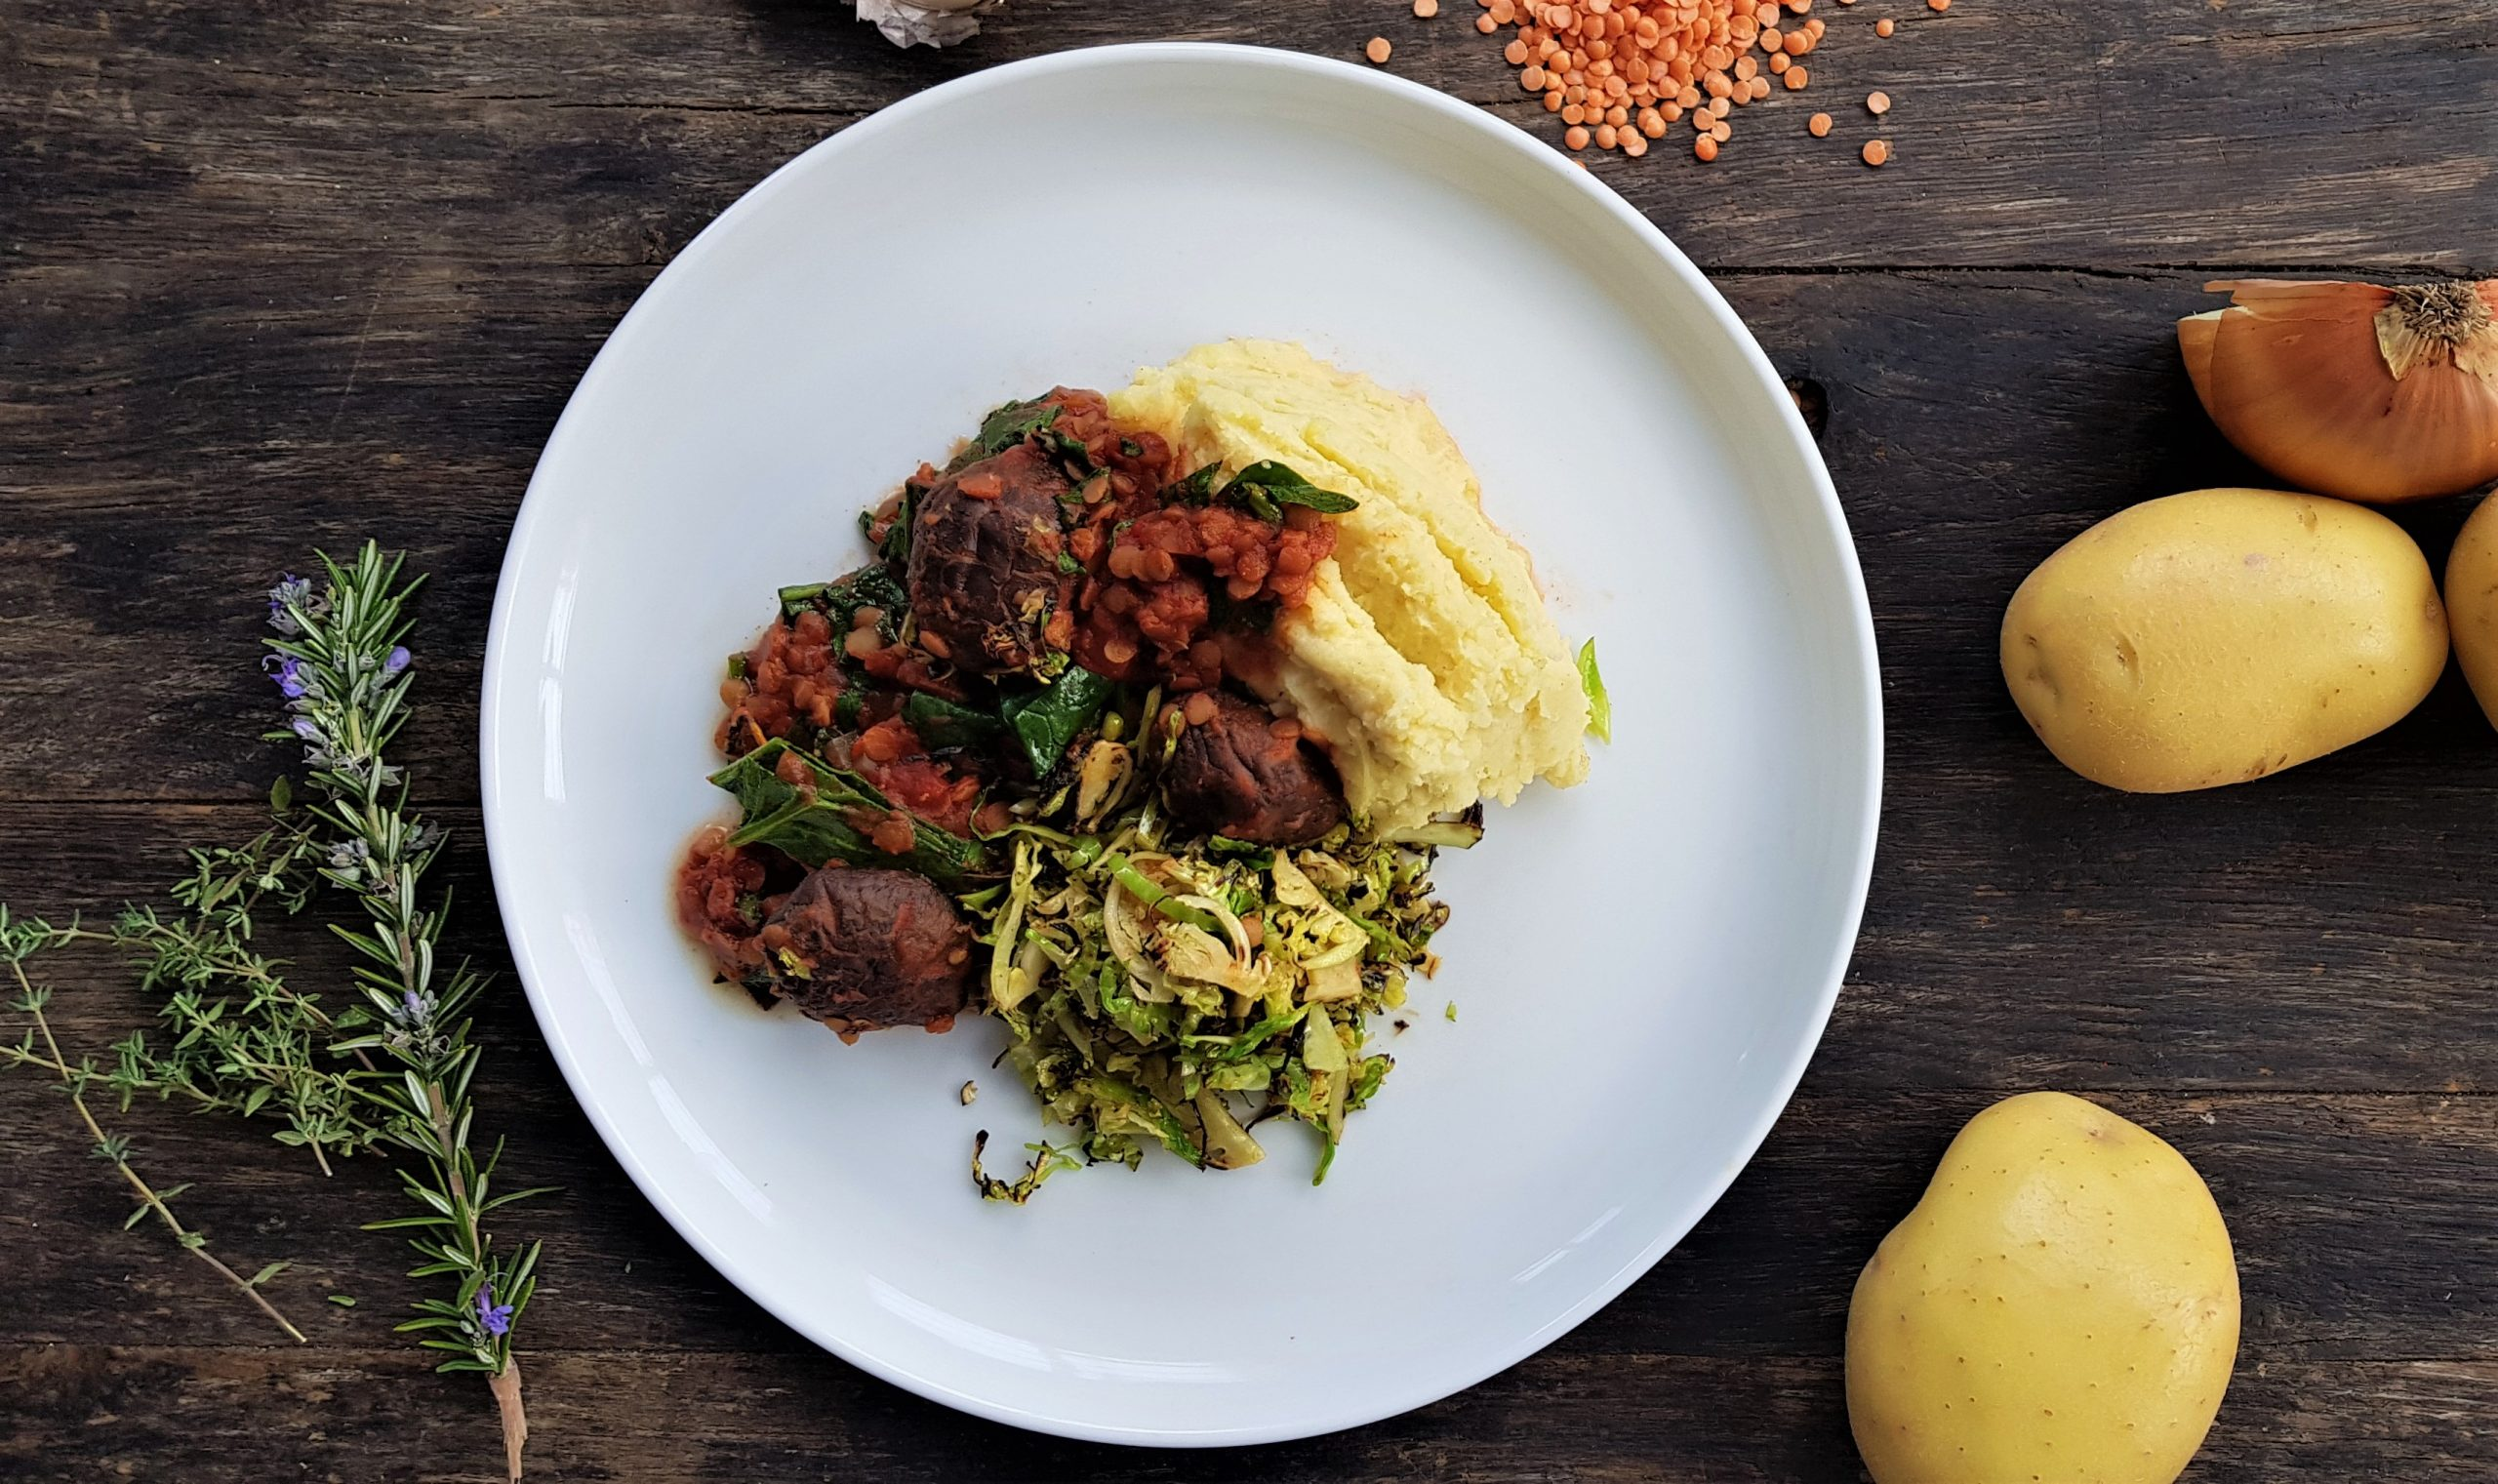 Mushroom, split pea and red wine ragu with mashed potato and charred Brussels sprouts